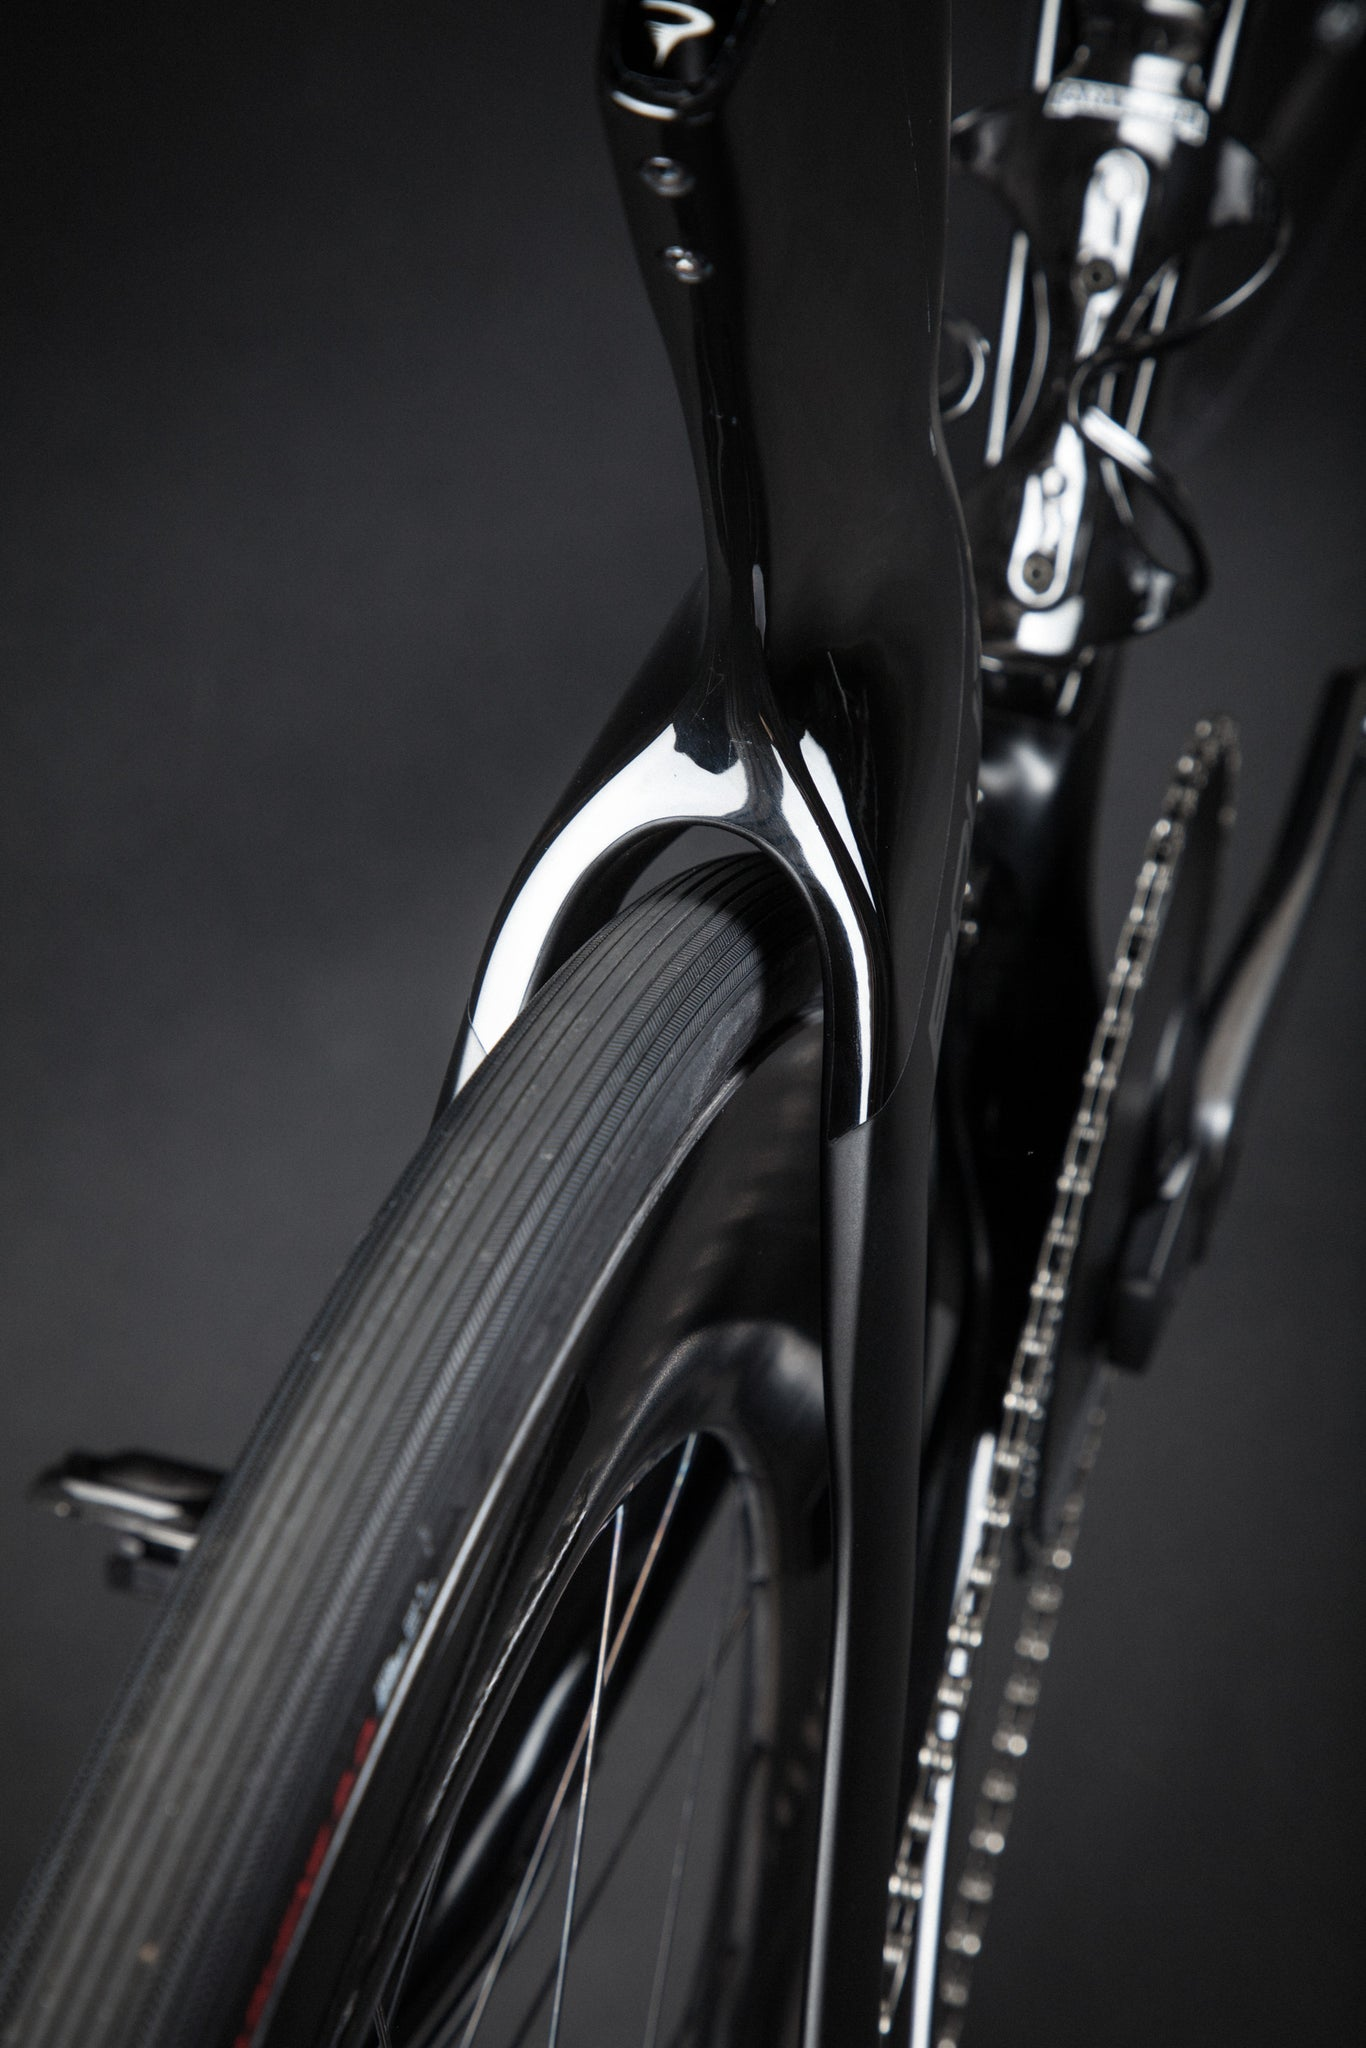 A Blacked Out Pinarello Bolide Gallery wheel rear stays